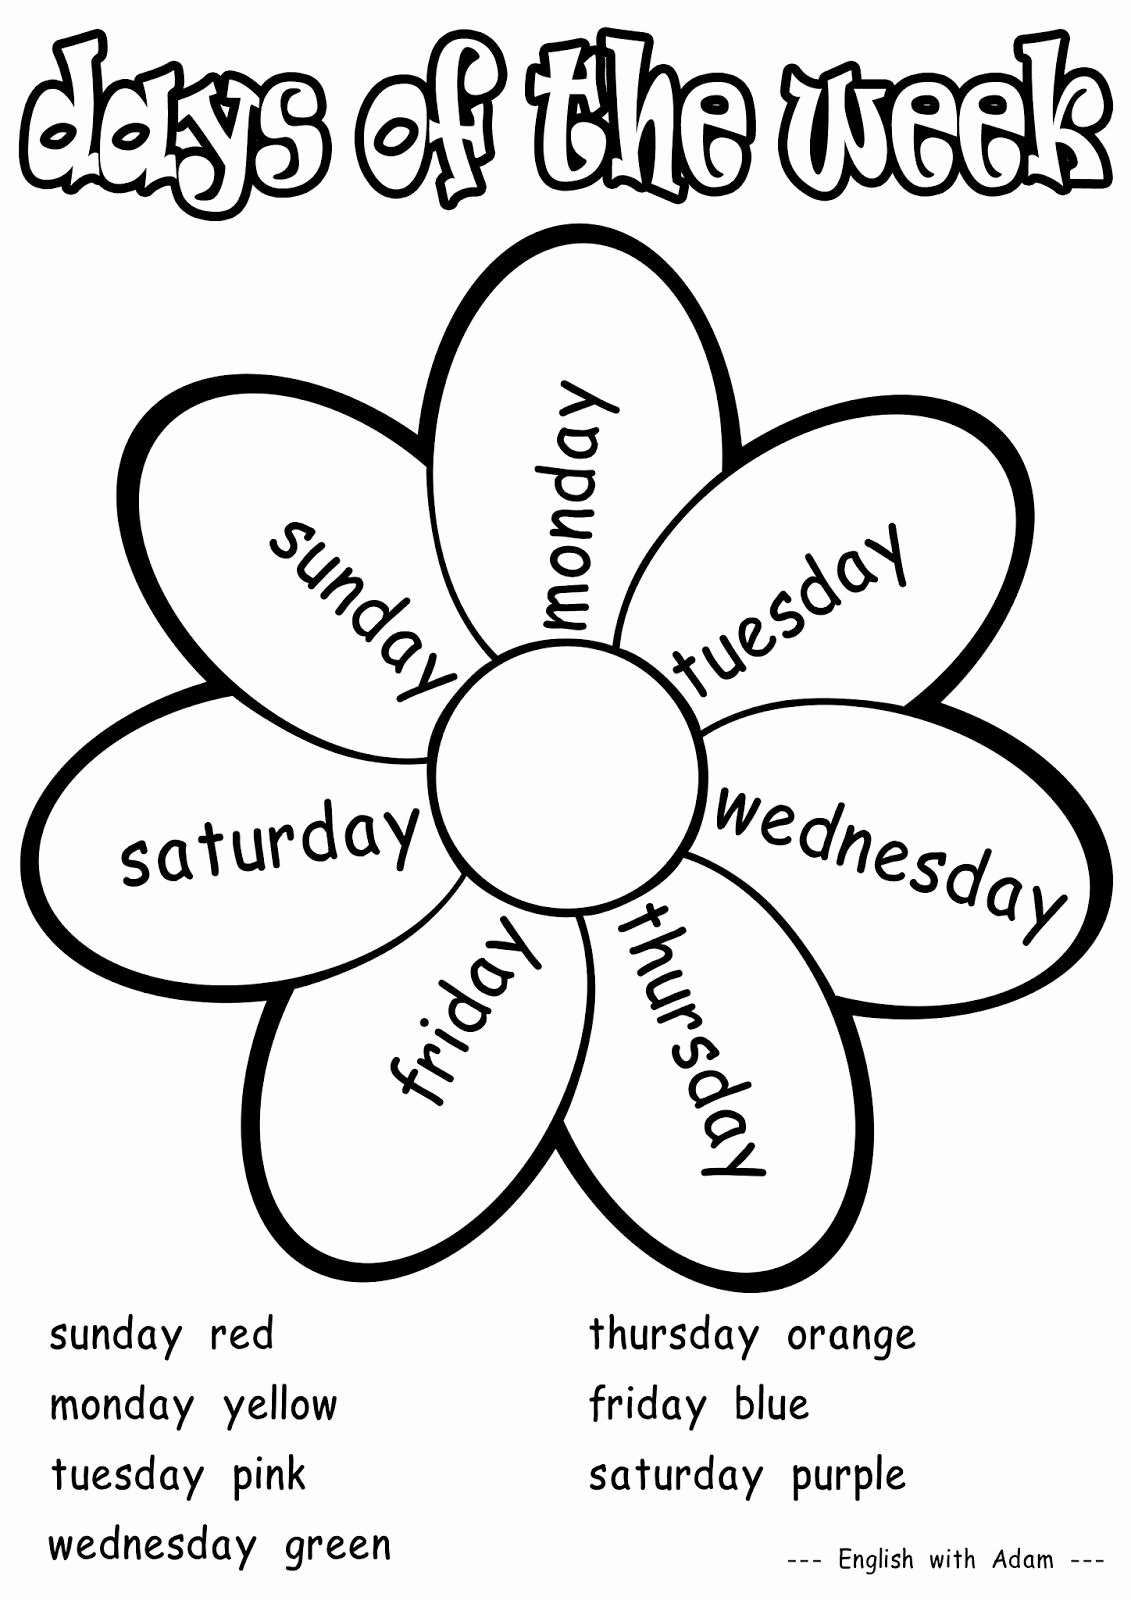 Days Of the Week Worksheets for Preschoolers Lovely Days Of the Week